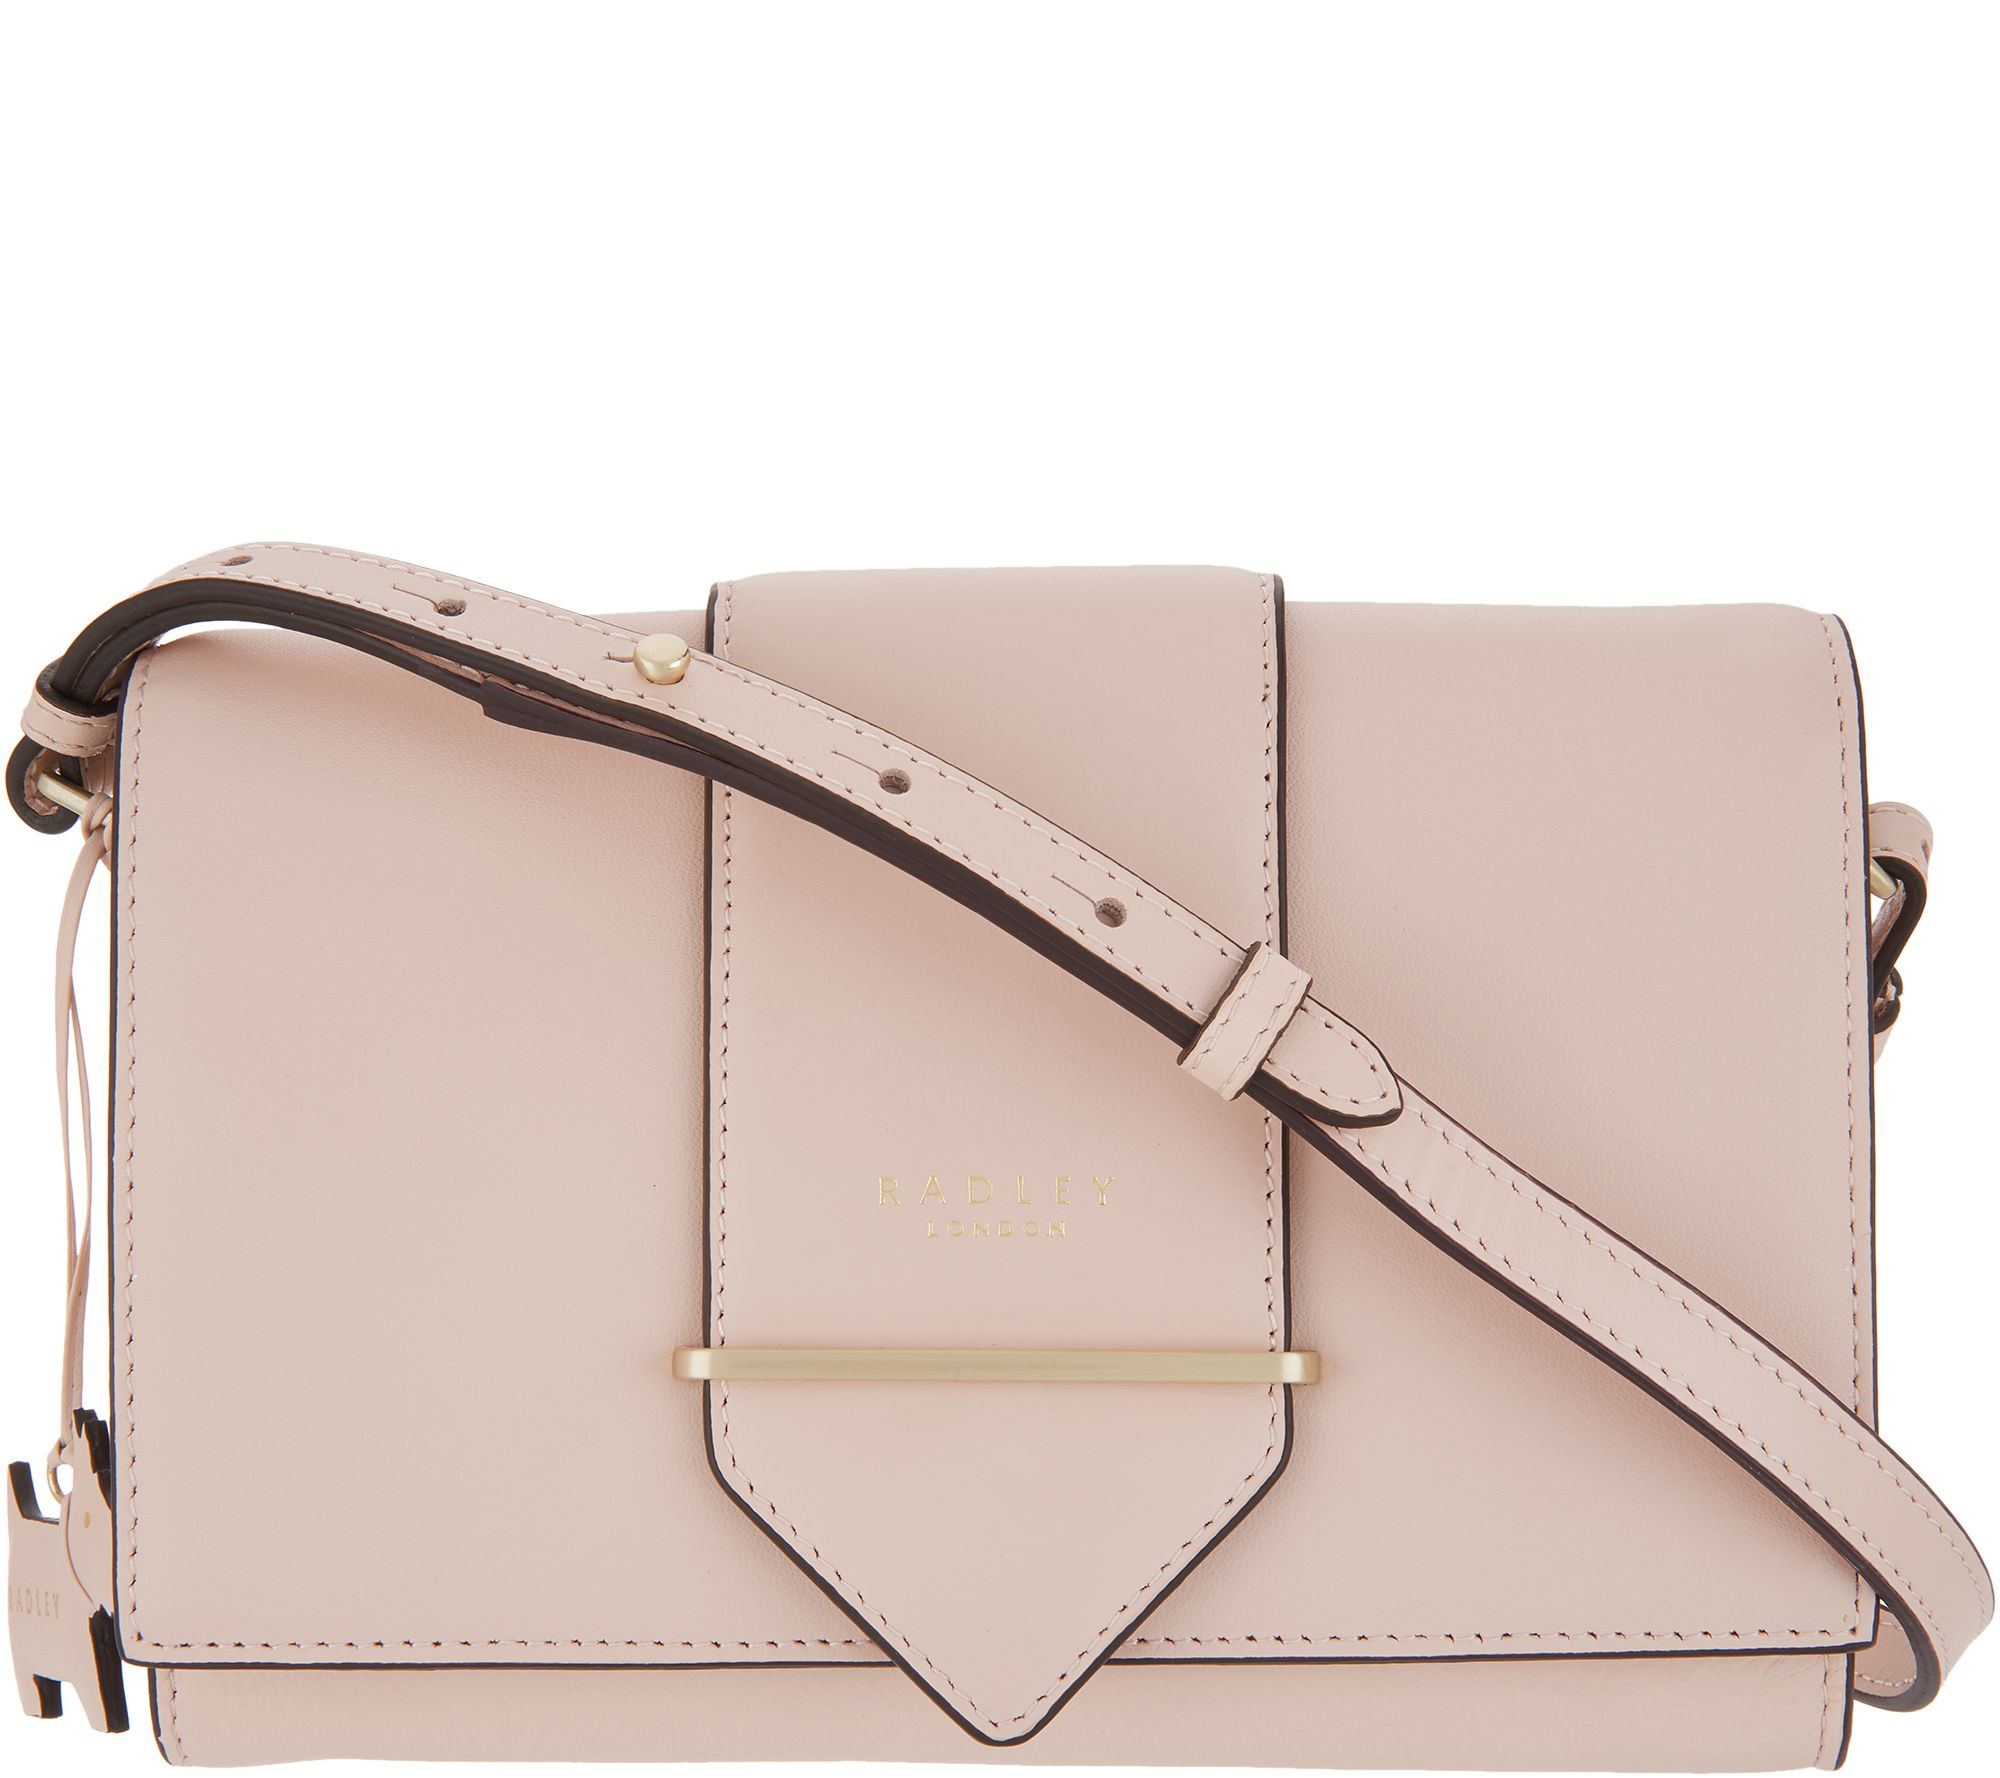 b66a60452476 RADLEY London Palace Street Small Flapover Crossbody Handbag - Page 1 —  QVC.com